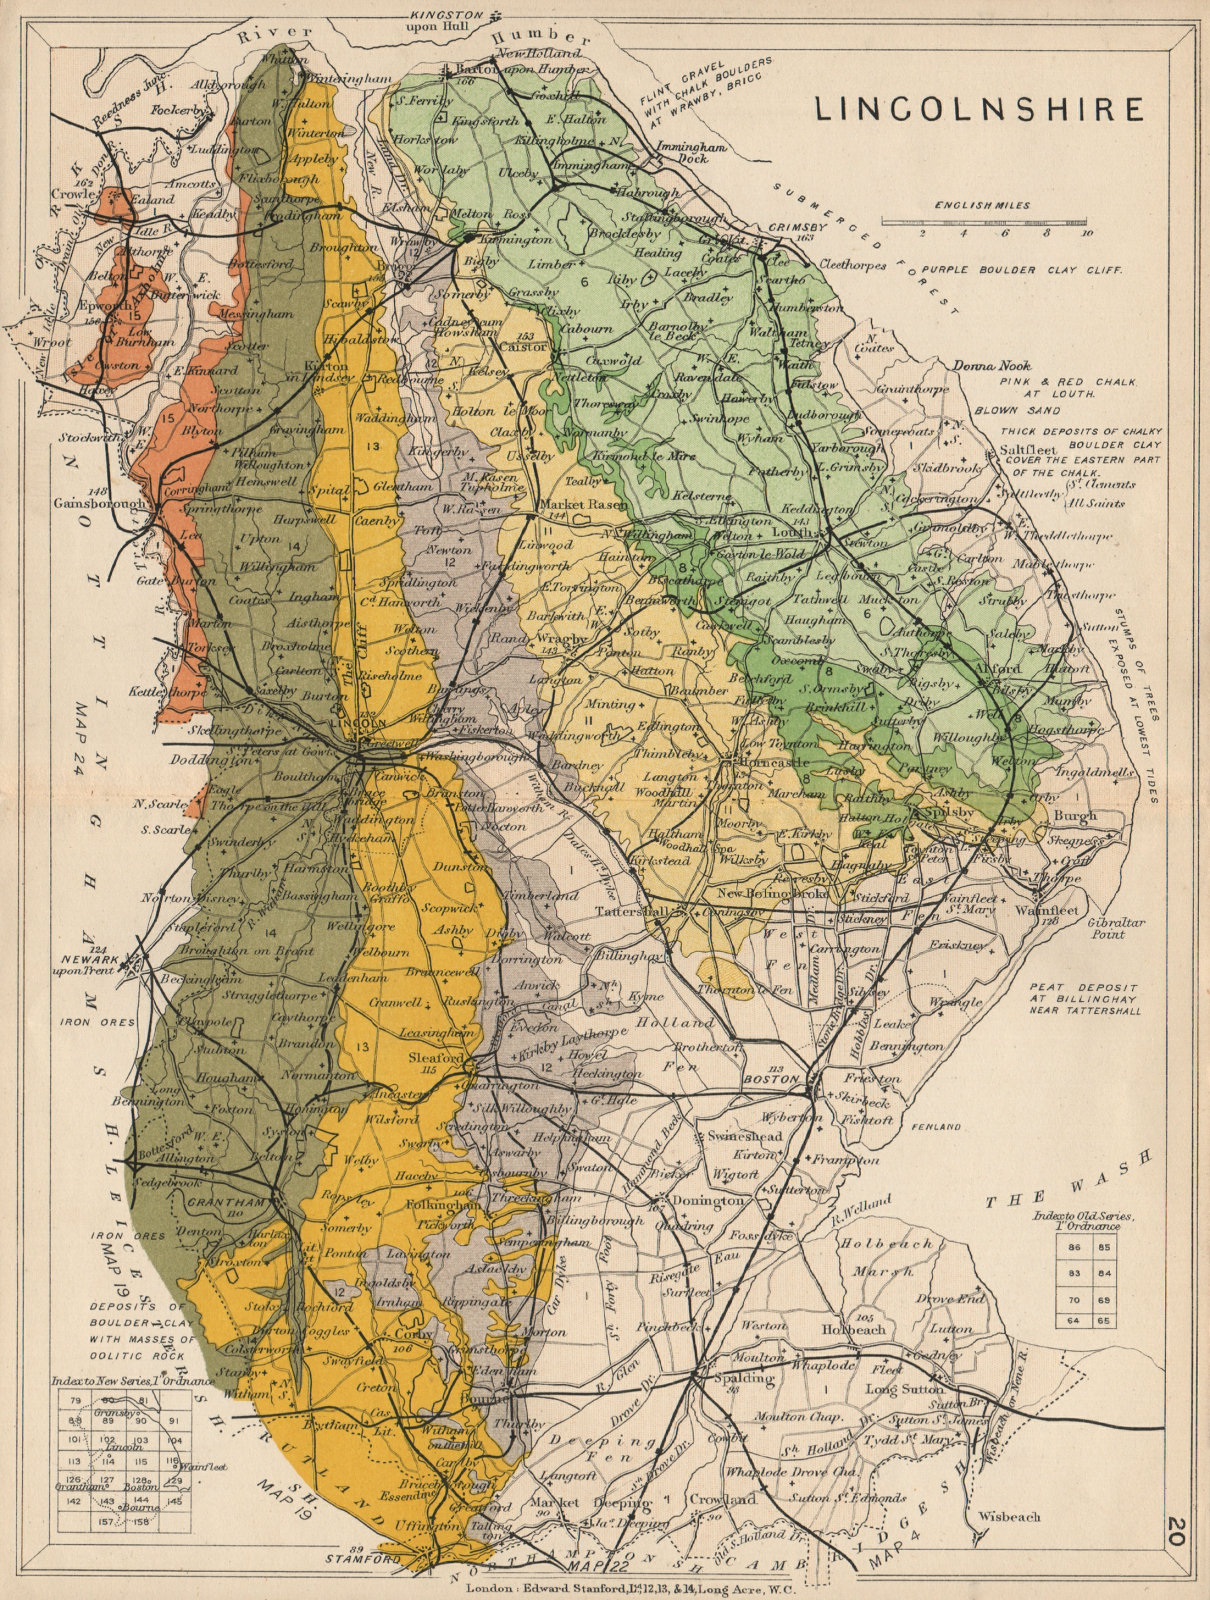 Associate Product LINCOLNSHIRE Geological map. STANFORD 1913 old antique vintage plan chart